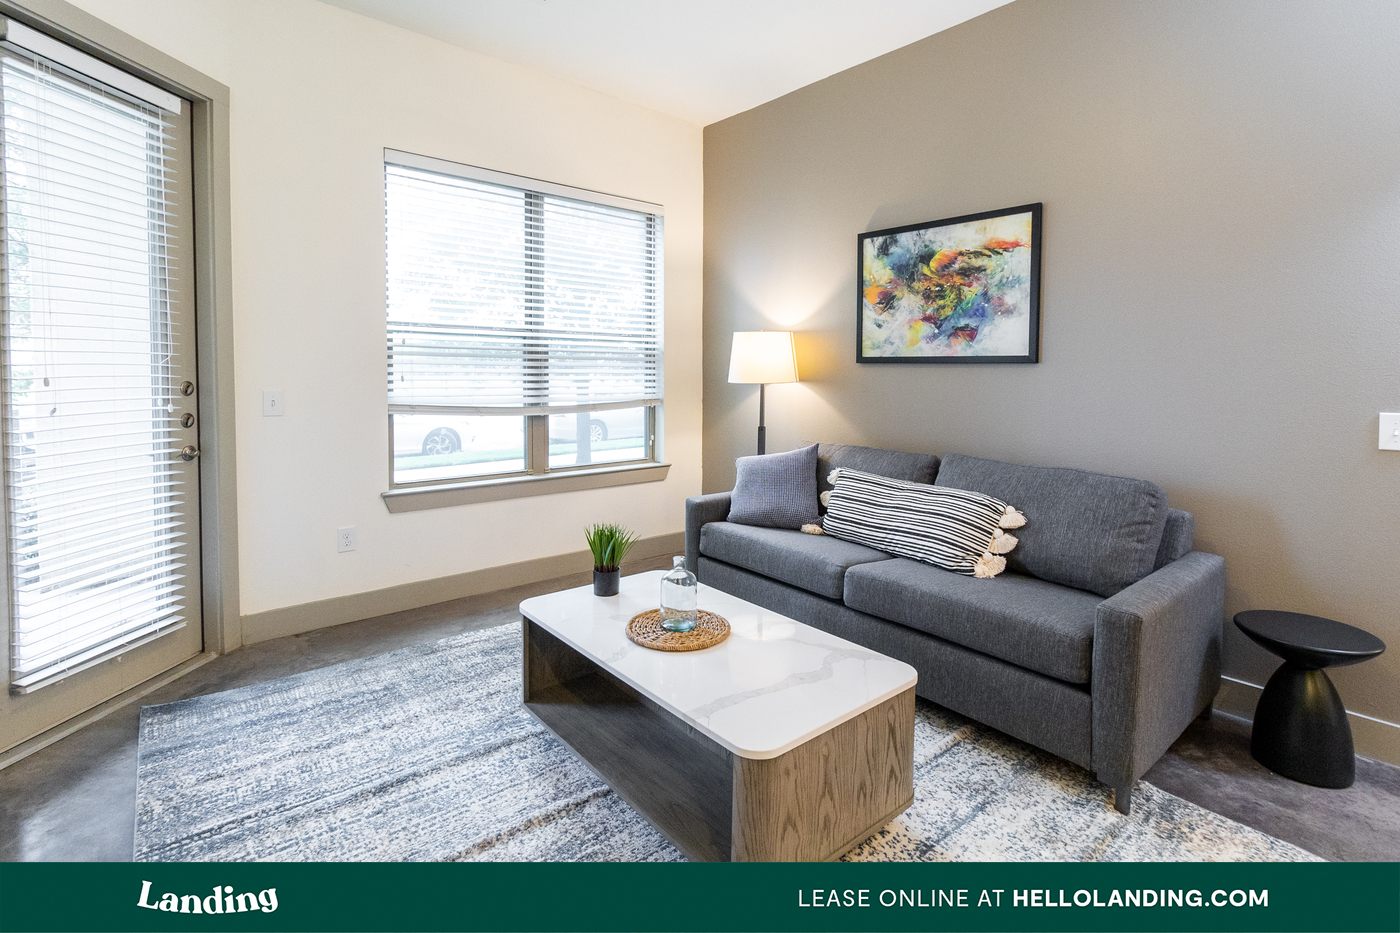 Maple District Lofts 355 for rent